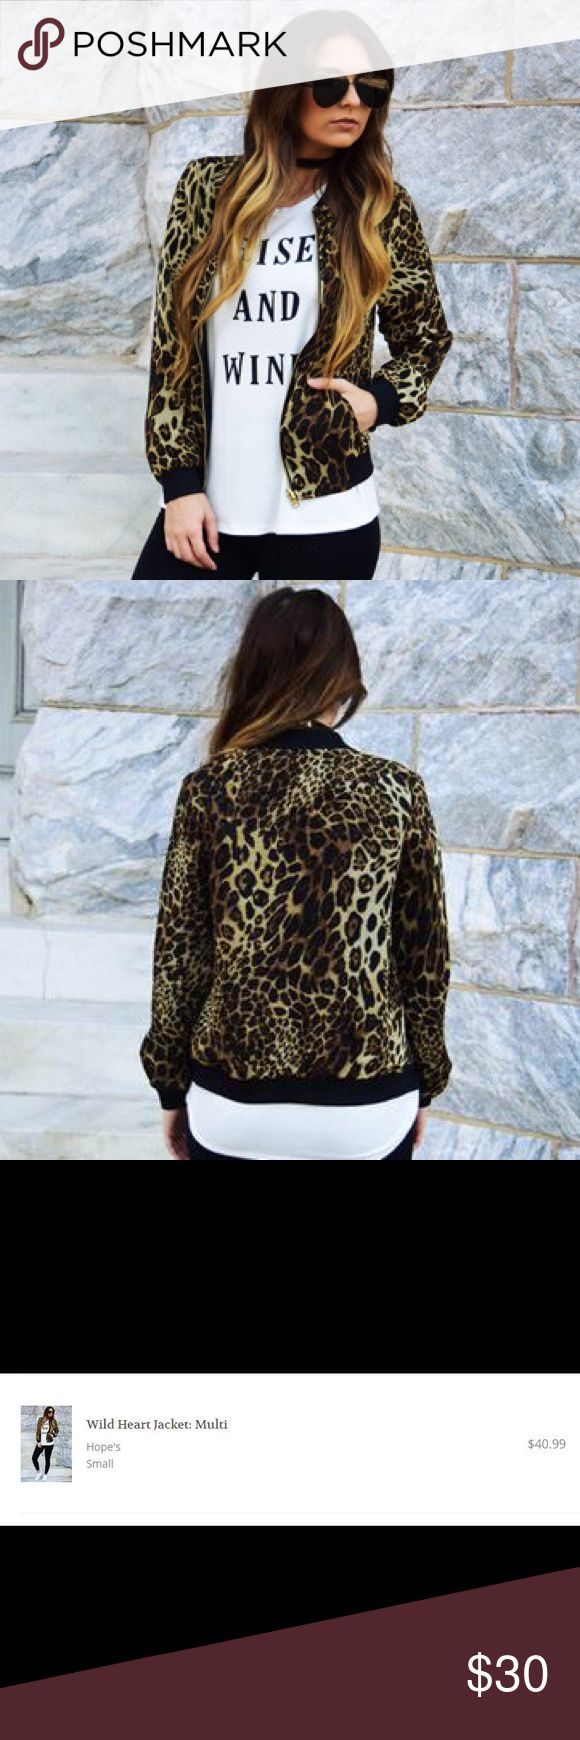 Leopard Print Bomber Jacket Lightweight, lined, leopard print bomber jacket from Hope's. Leopard print is a sheer material layered over black lining. Perfect for wearing out, never worn. NWT Jackets & Coats